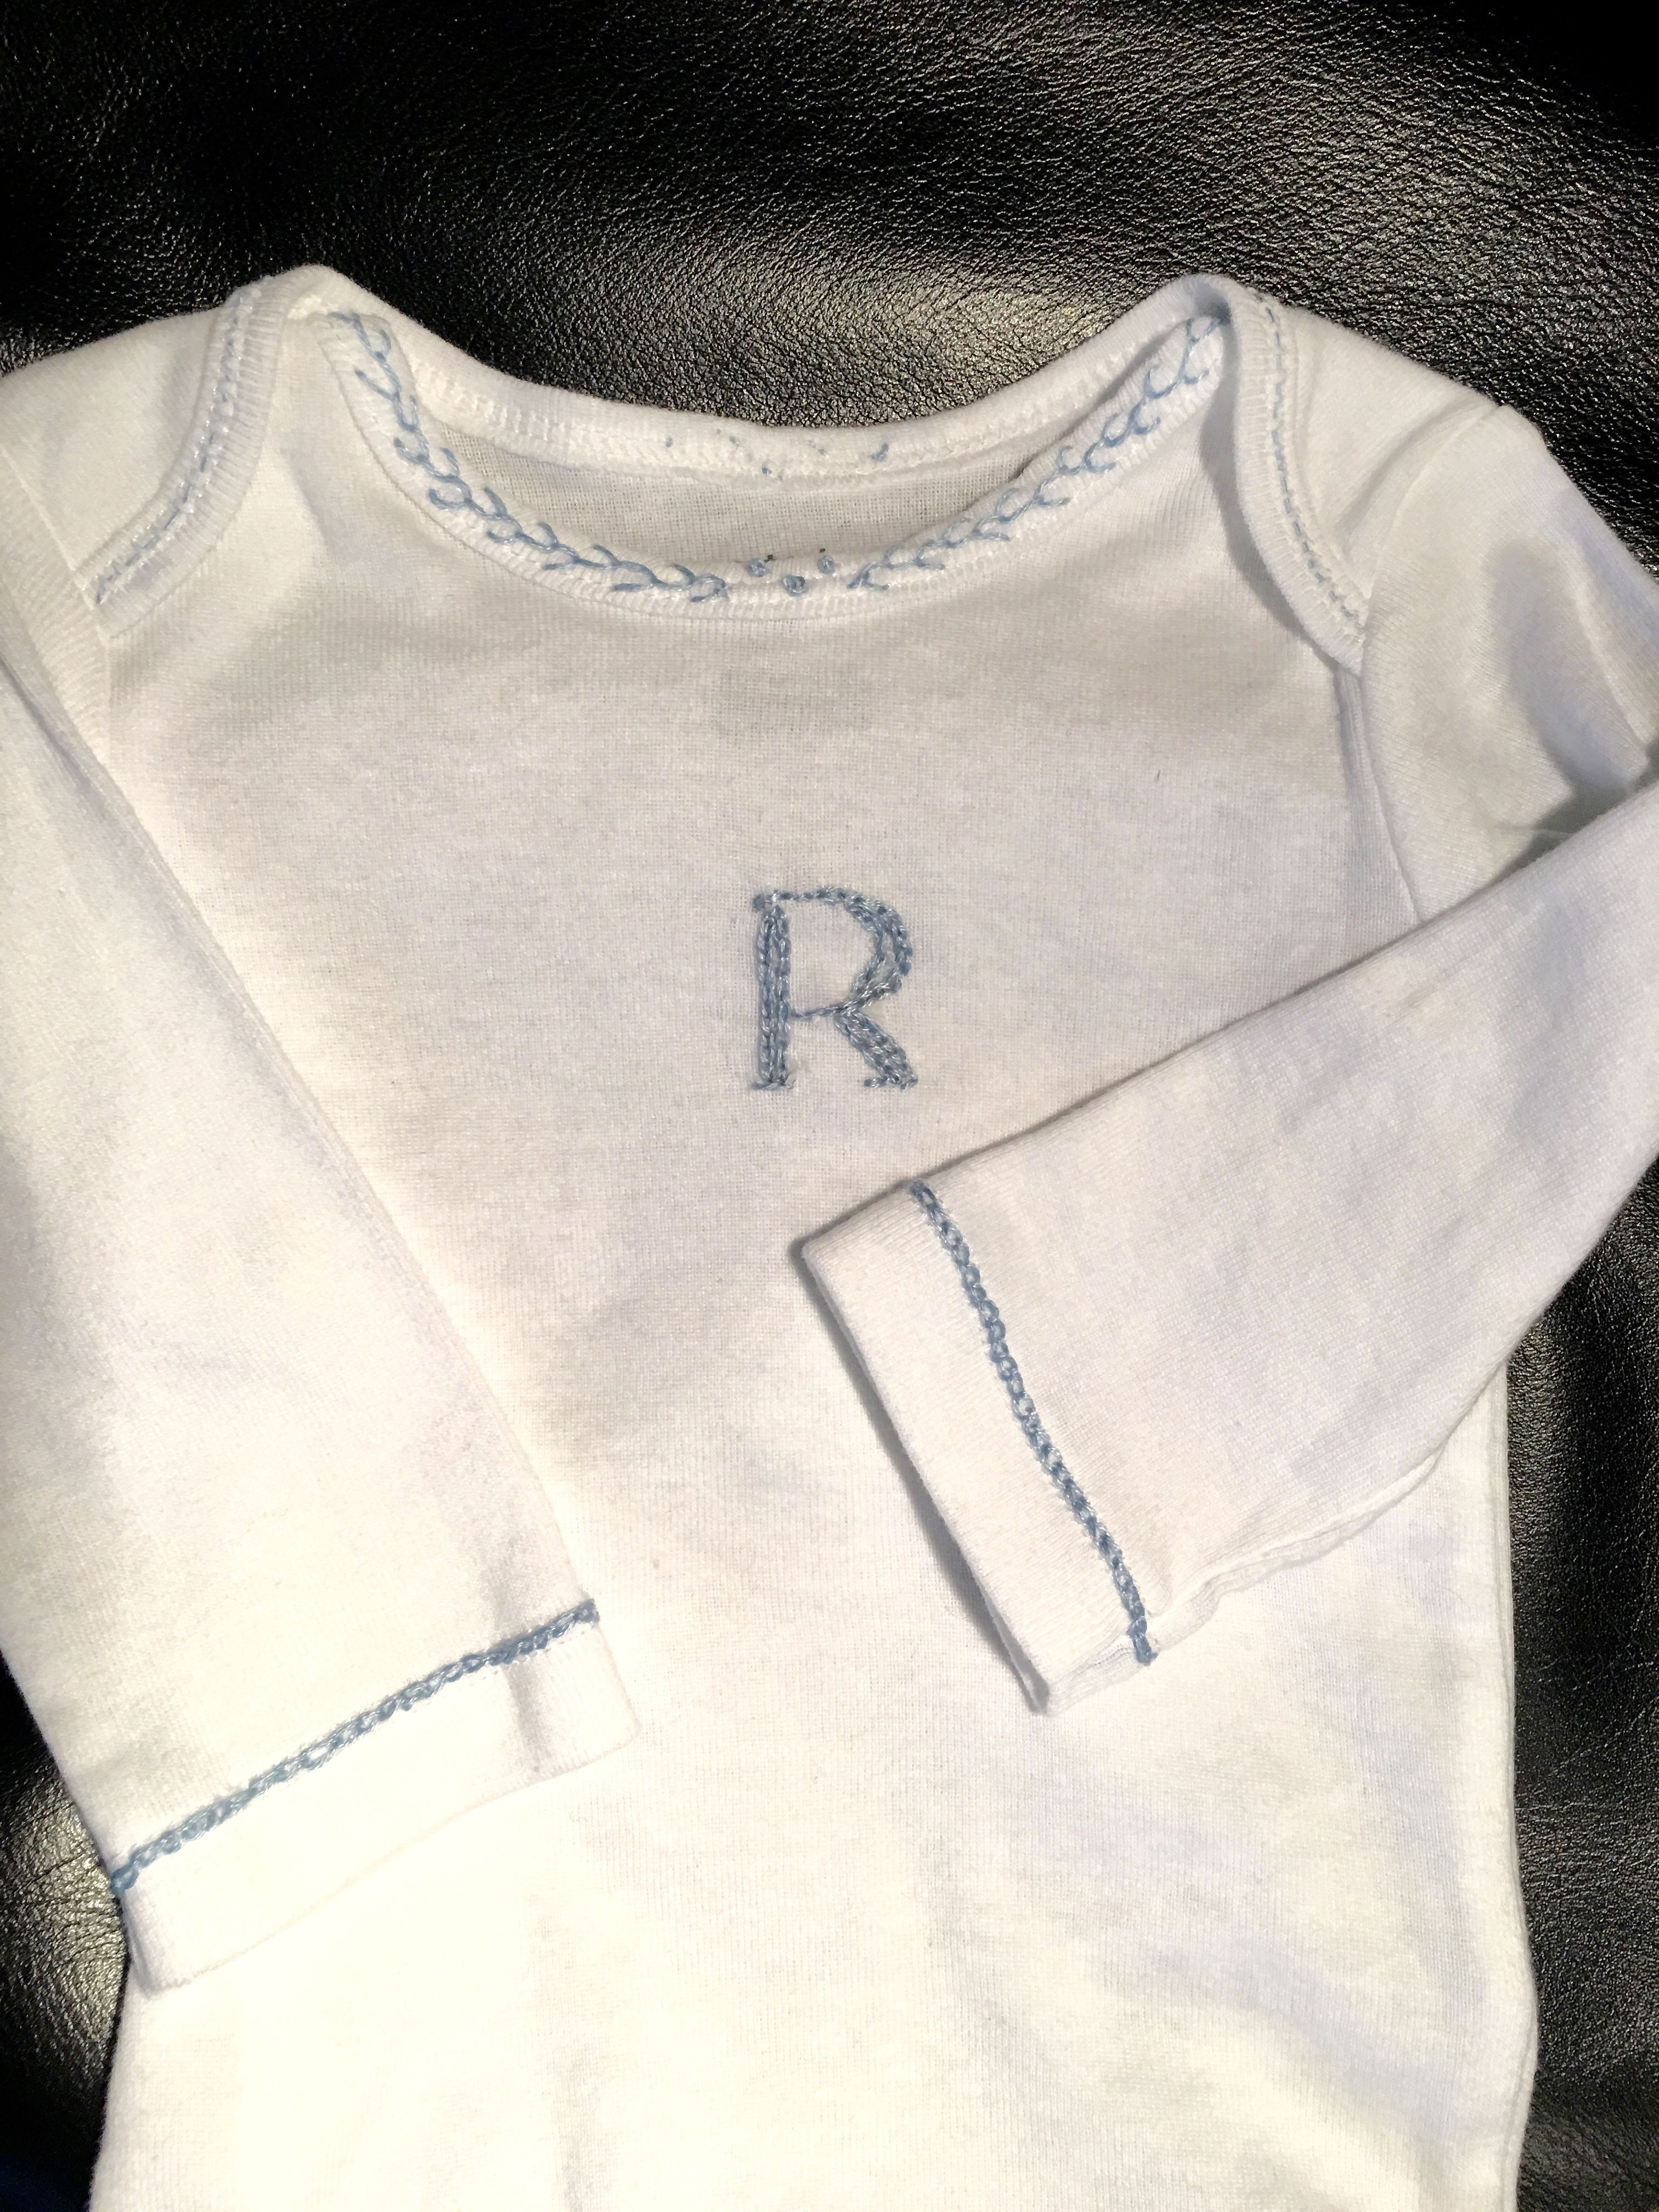 Little carterus onesie that i handembroidered for nephew coming